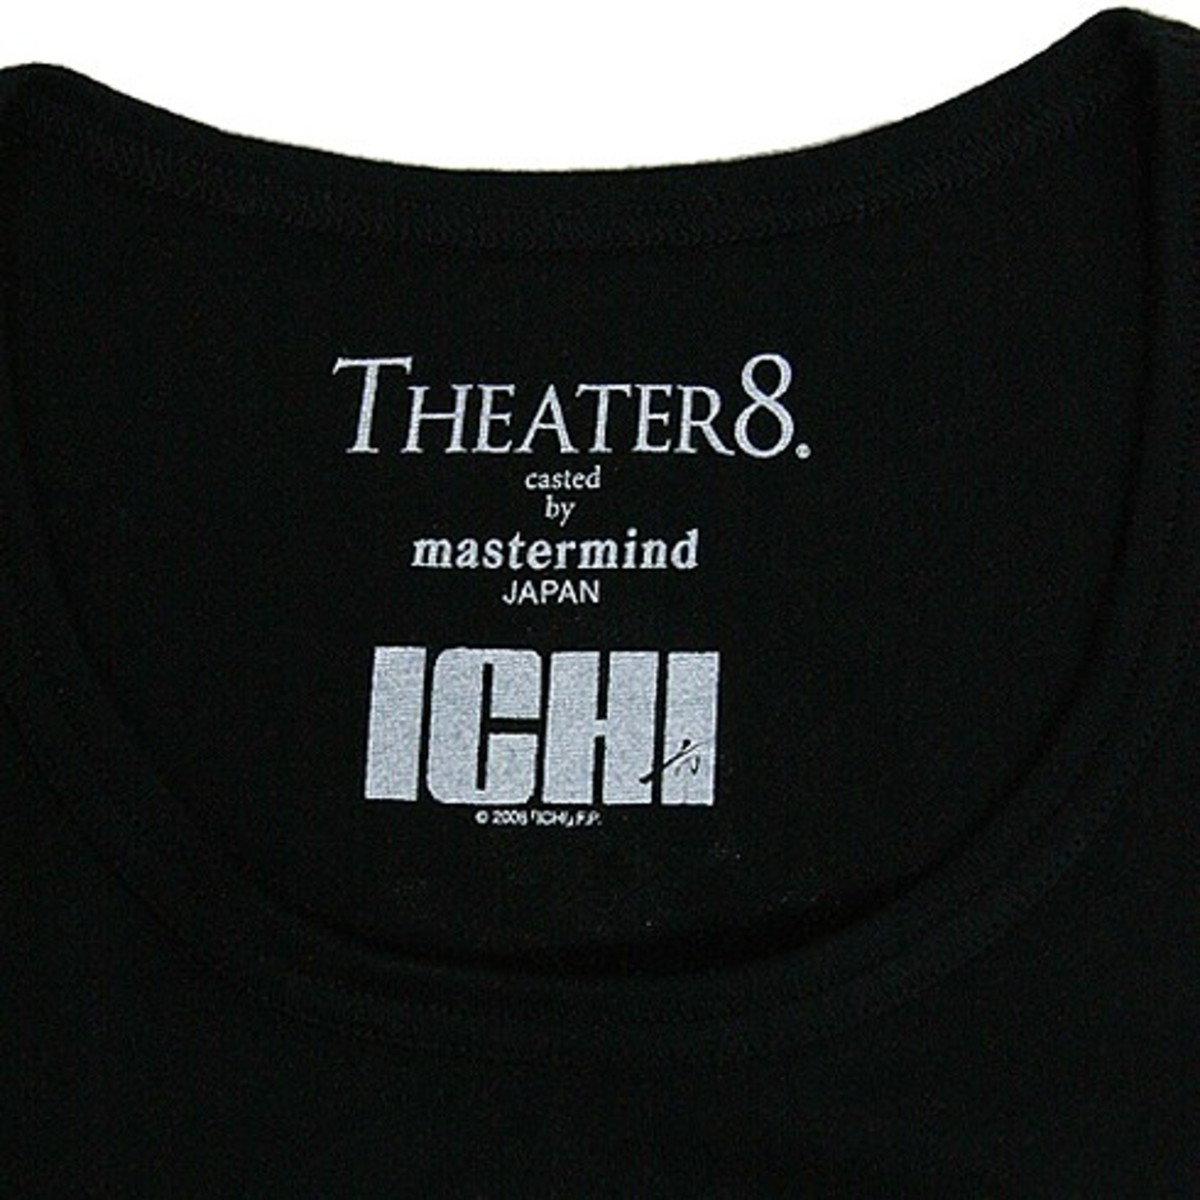 mastermind JAPAN x Theater8 - ICHI the Movie T-Shirt